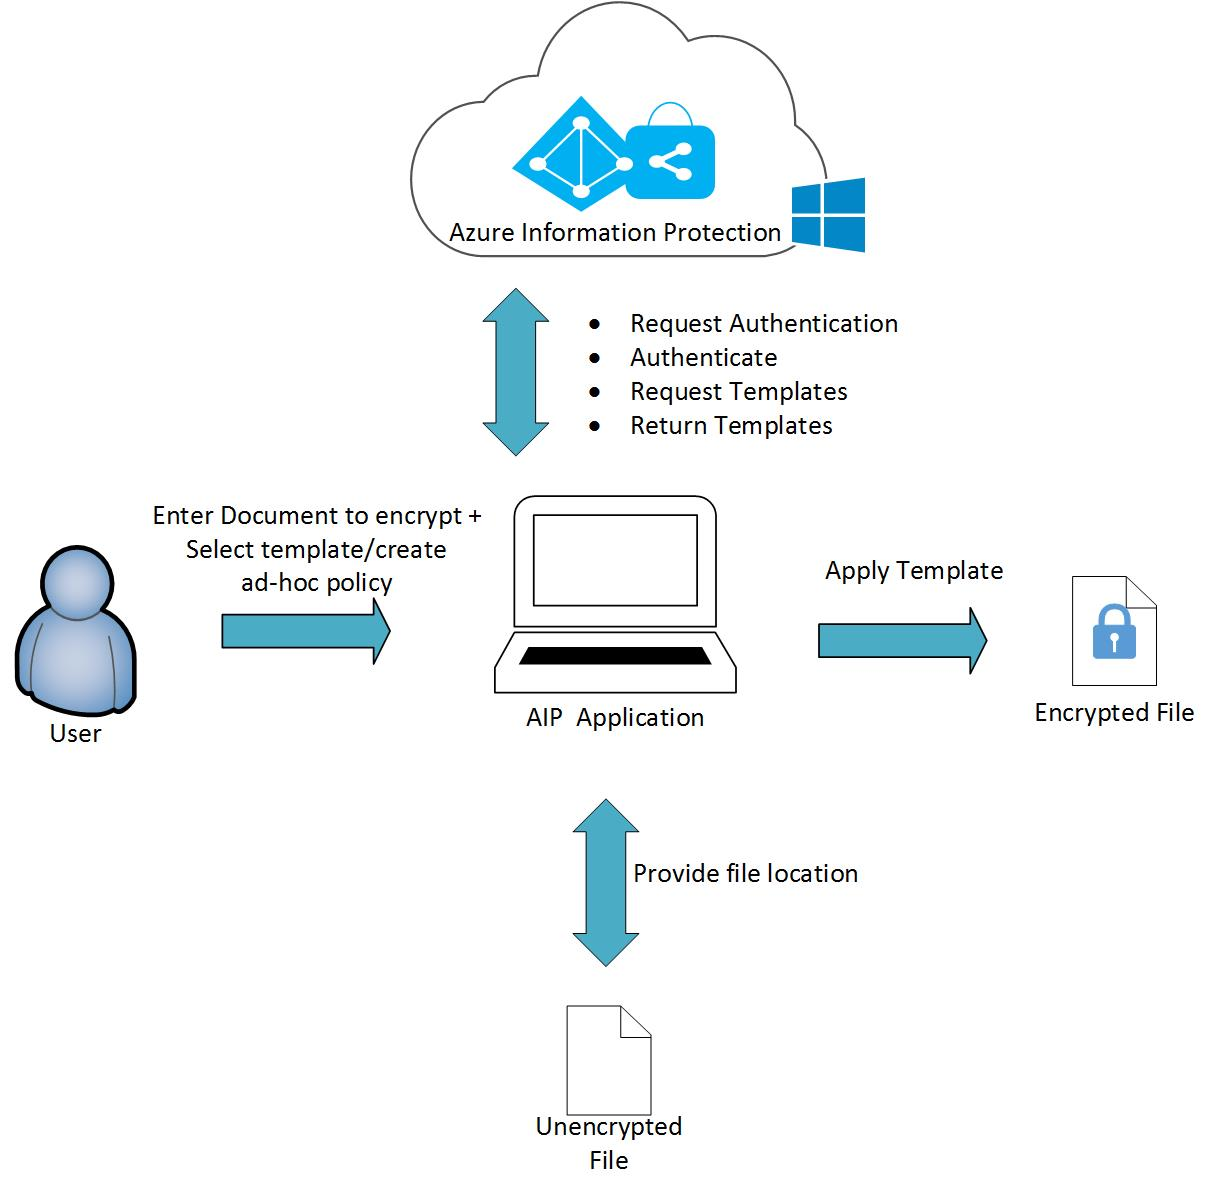 Adal Authentication Flow Diagram Microsoft Guide And Process Developing Your Application Aip Docs Diagrams Office